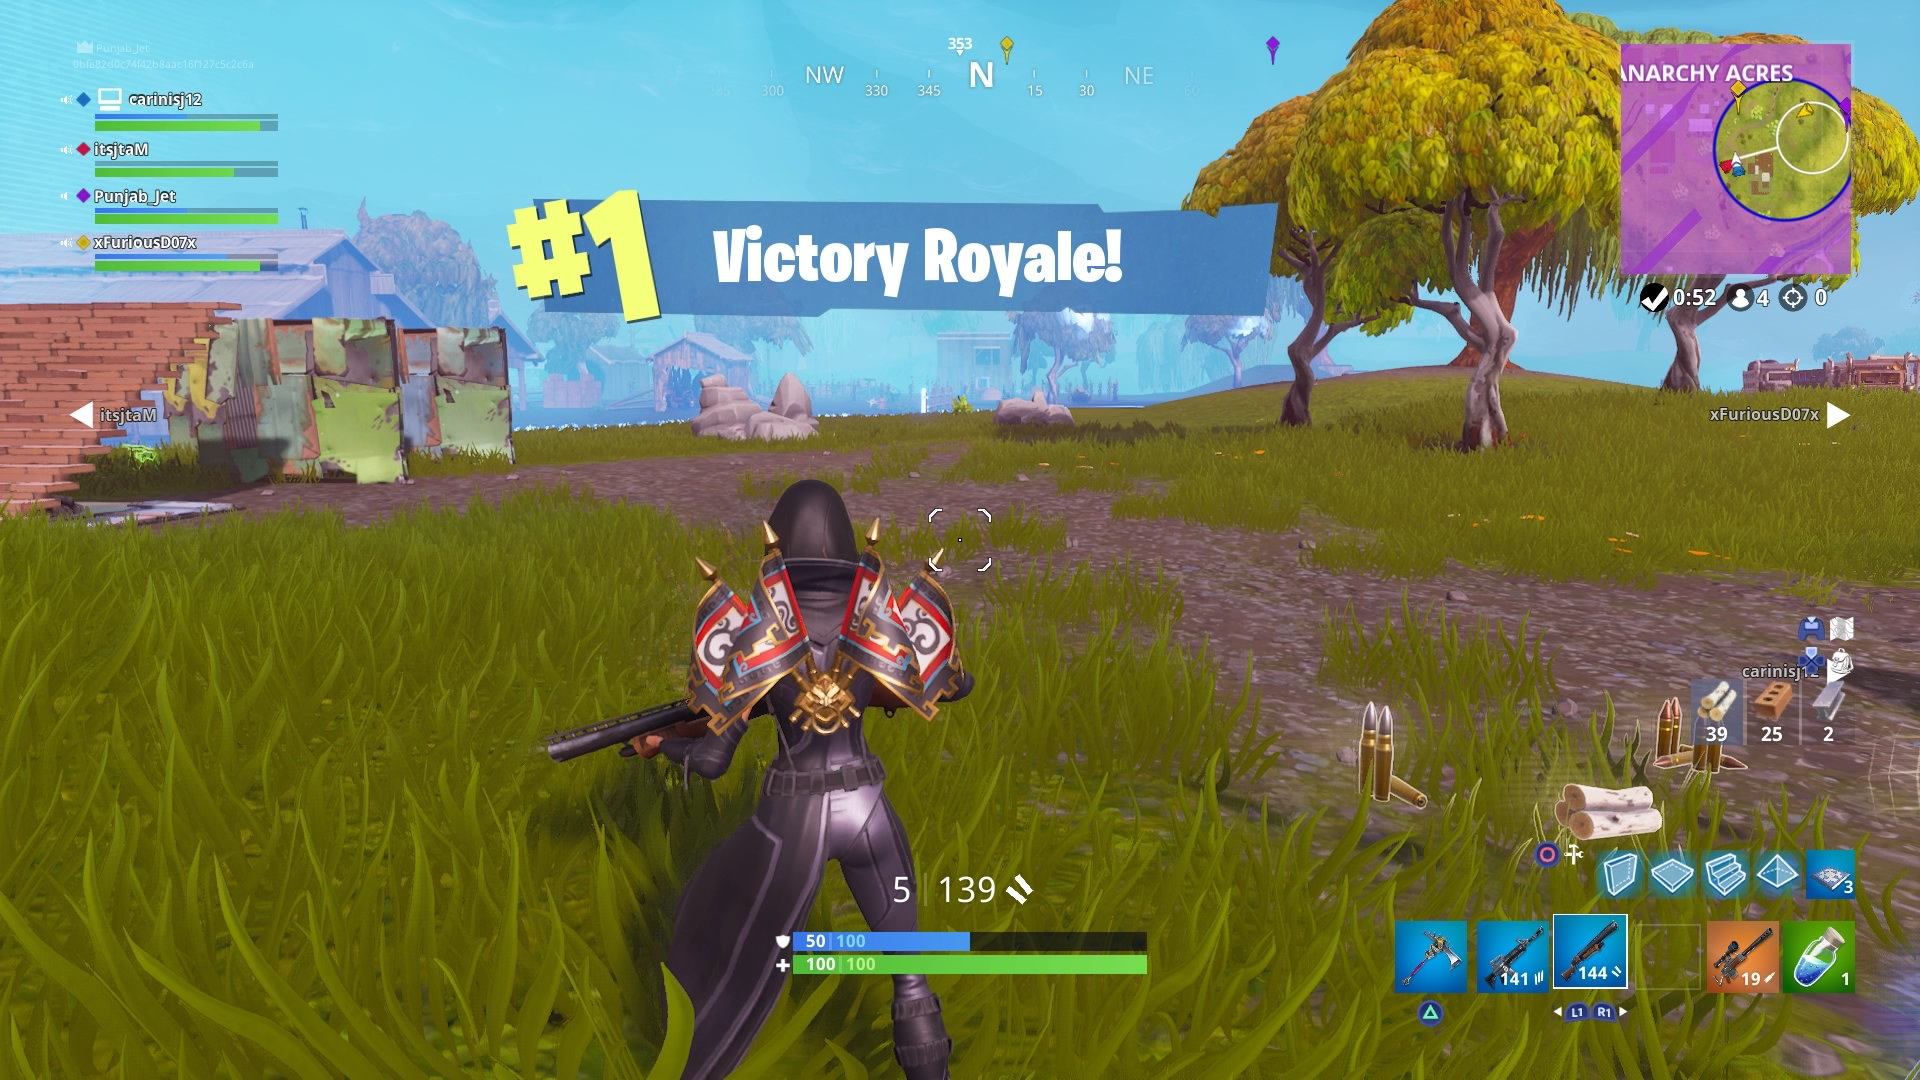 fortnite victory royale widescreen desktop wallpaper 1484